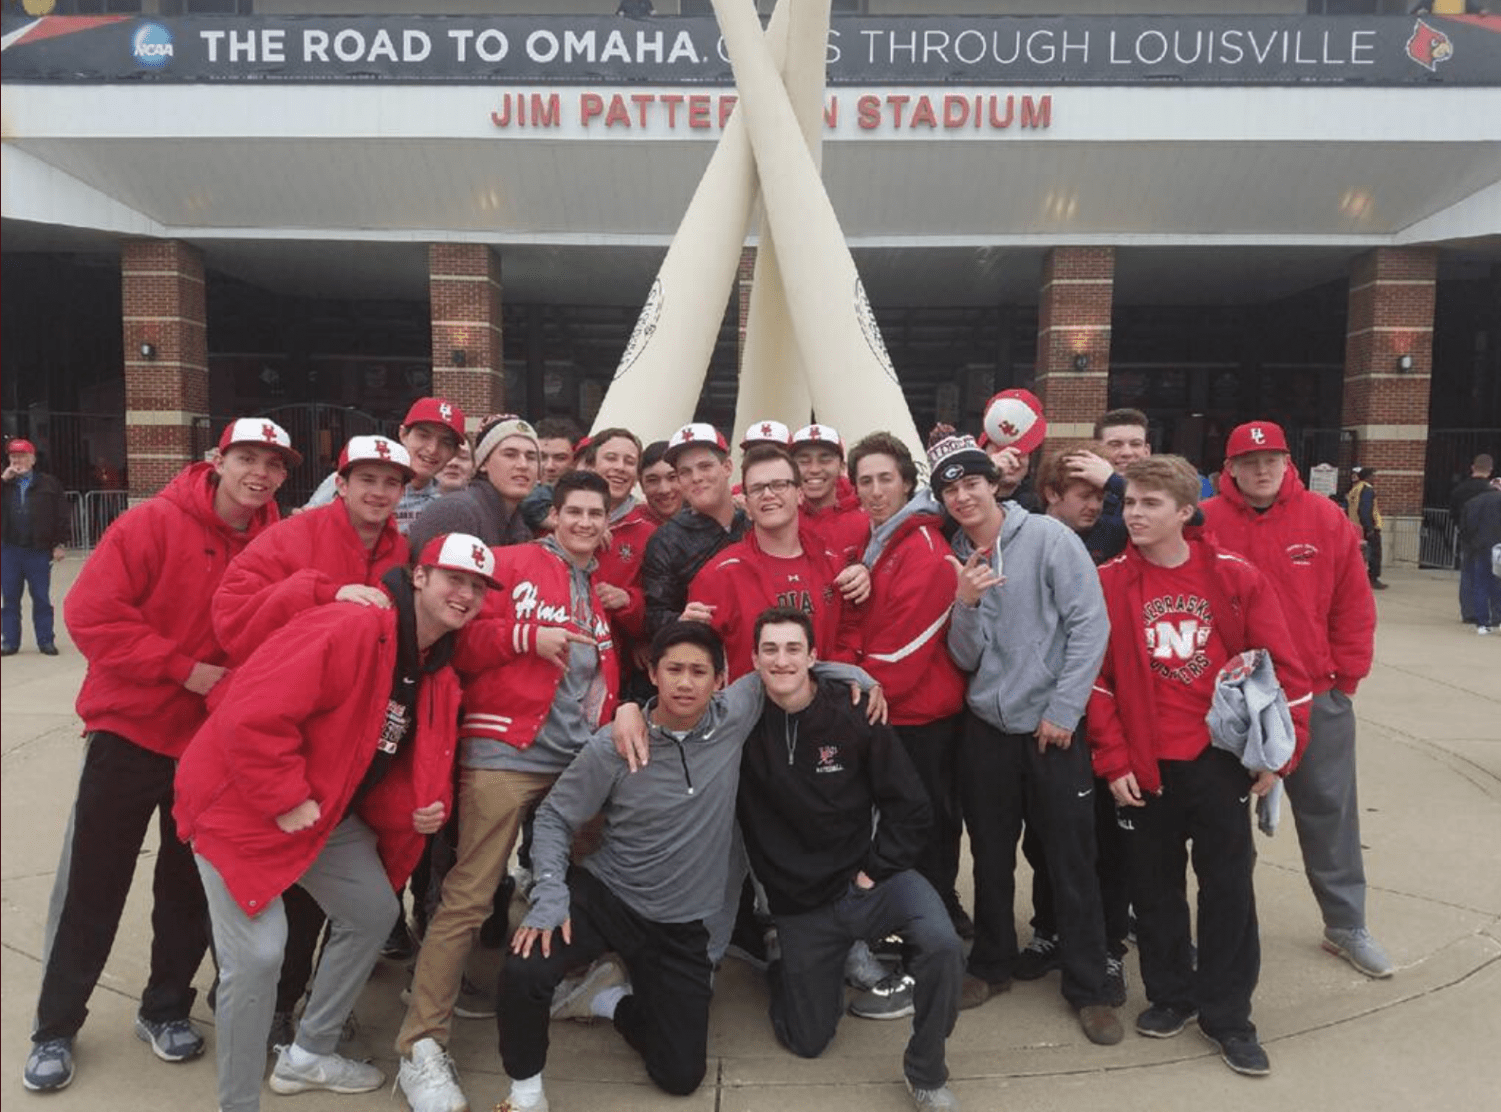 The team enjoyed time off from games at a Louisville Cardinals baseball game.